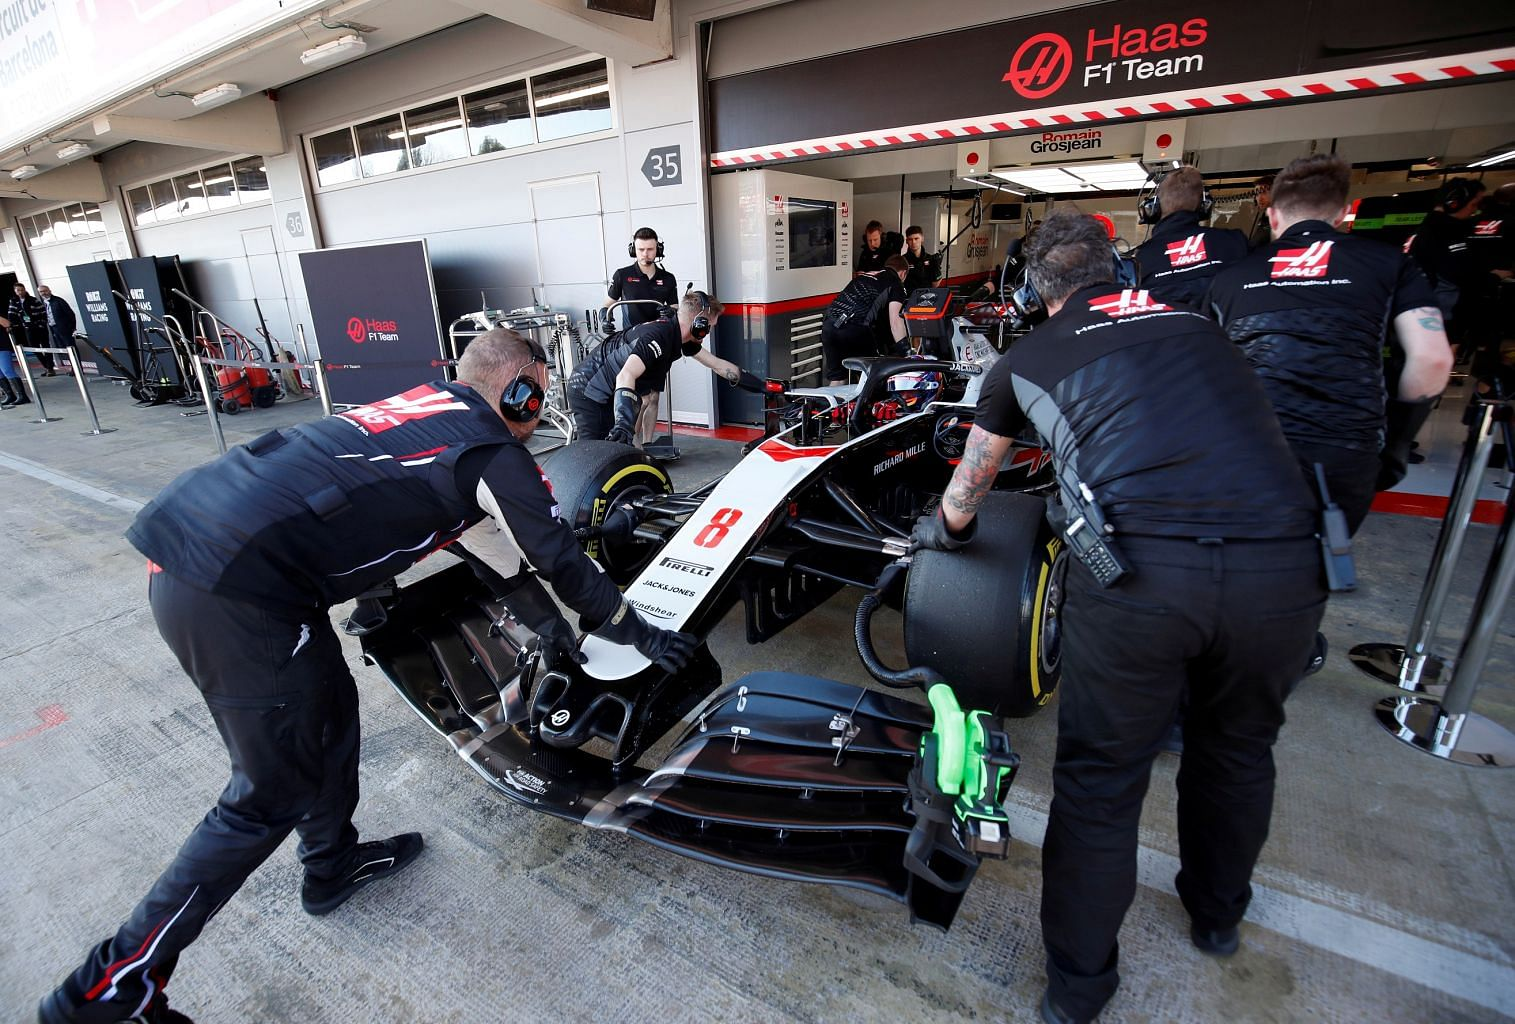 Motor Racing Haas Furloughs Staff Fifth F1 Team To Do So Formula One News Top Stories The Straits Times